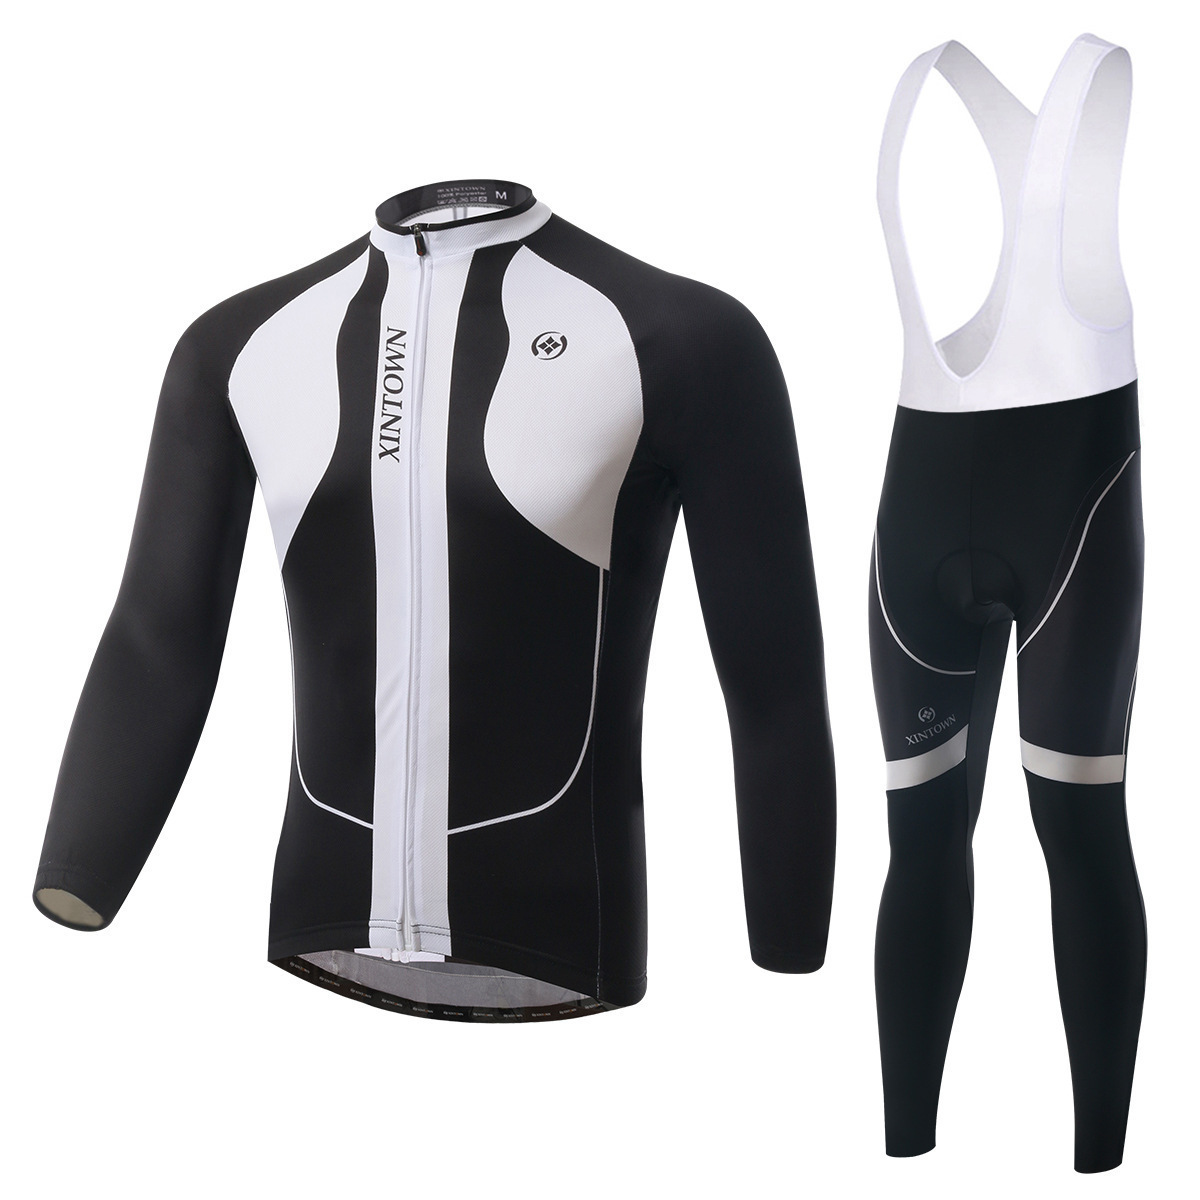 BOODUN Loong As White Riding Clothes Straps Long Sleeve Suit Bicycle Serve Catch Down Windbreak Keep Warm Function Underwear